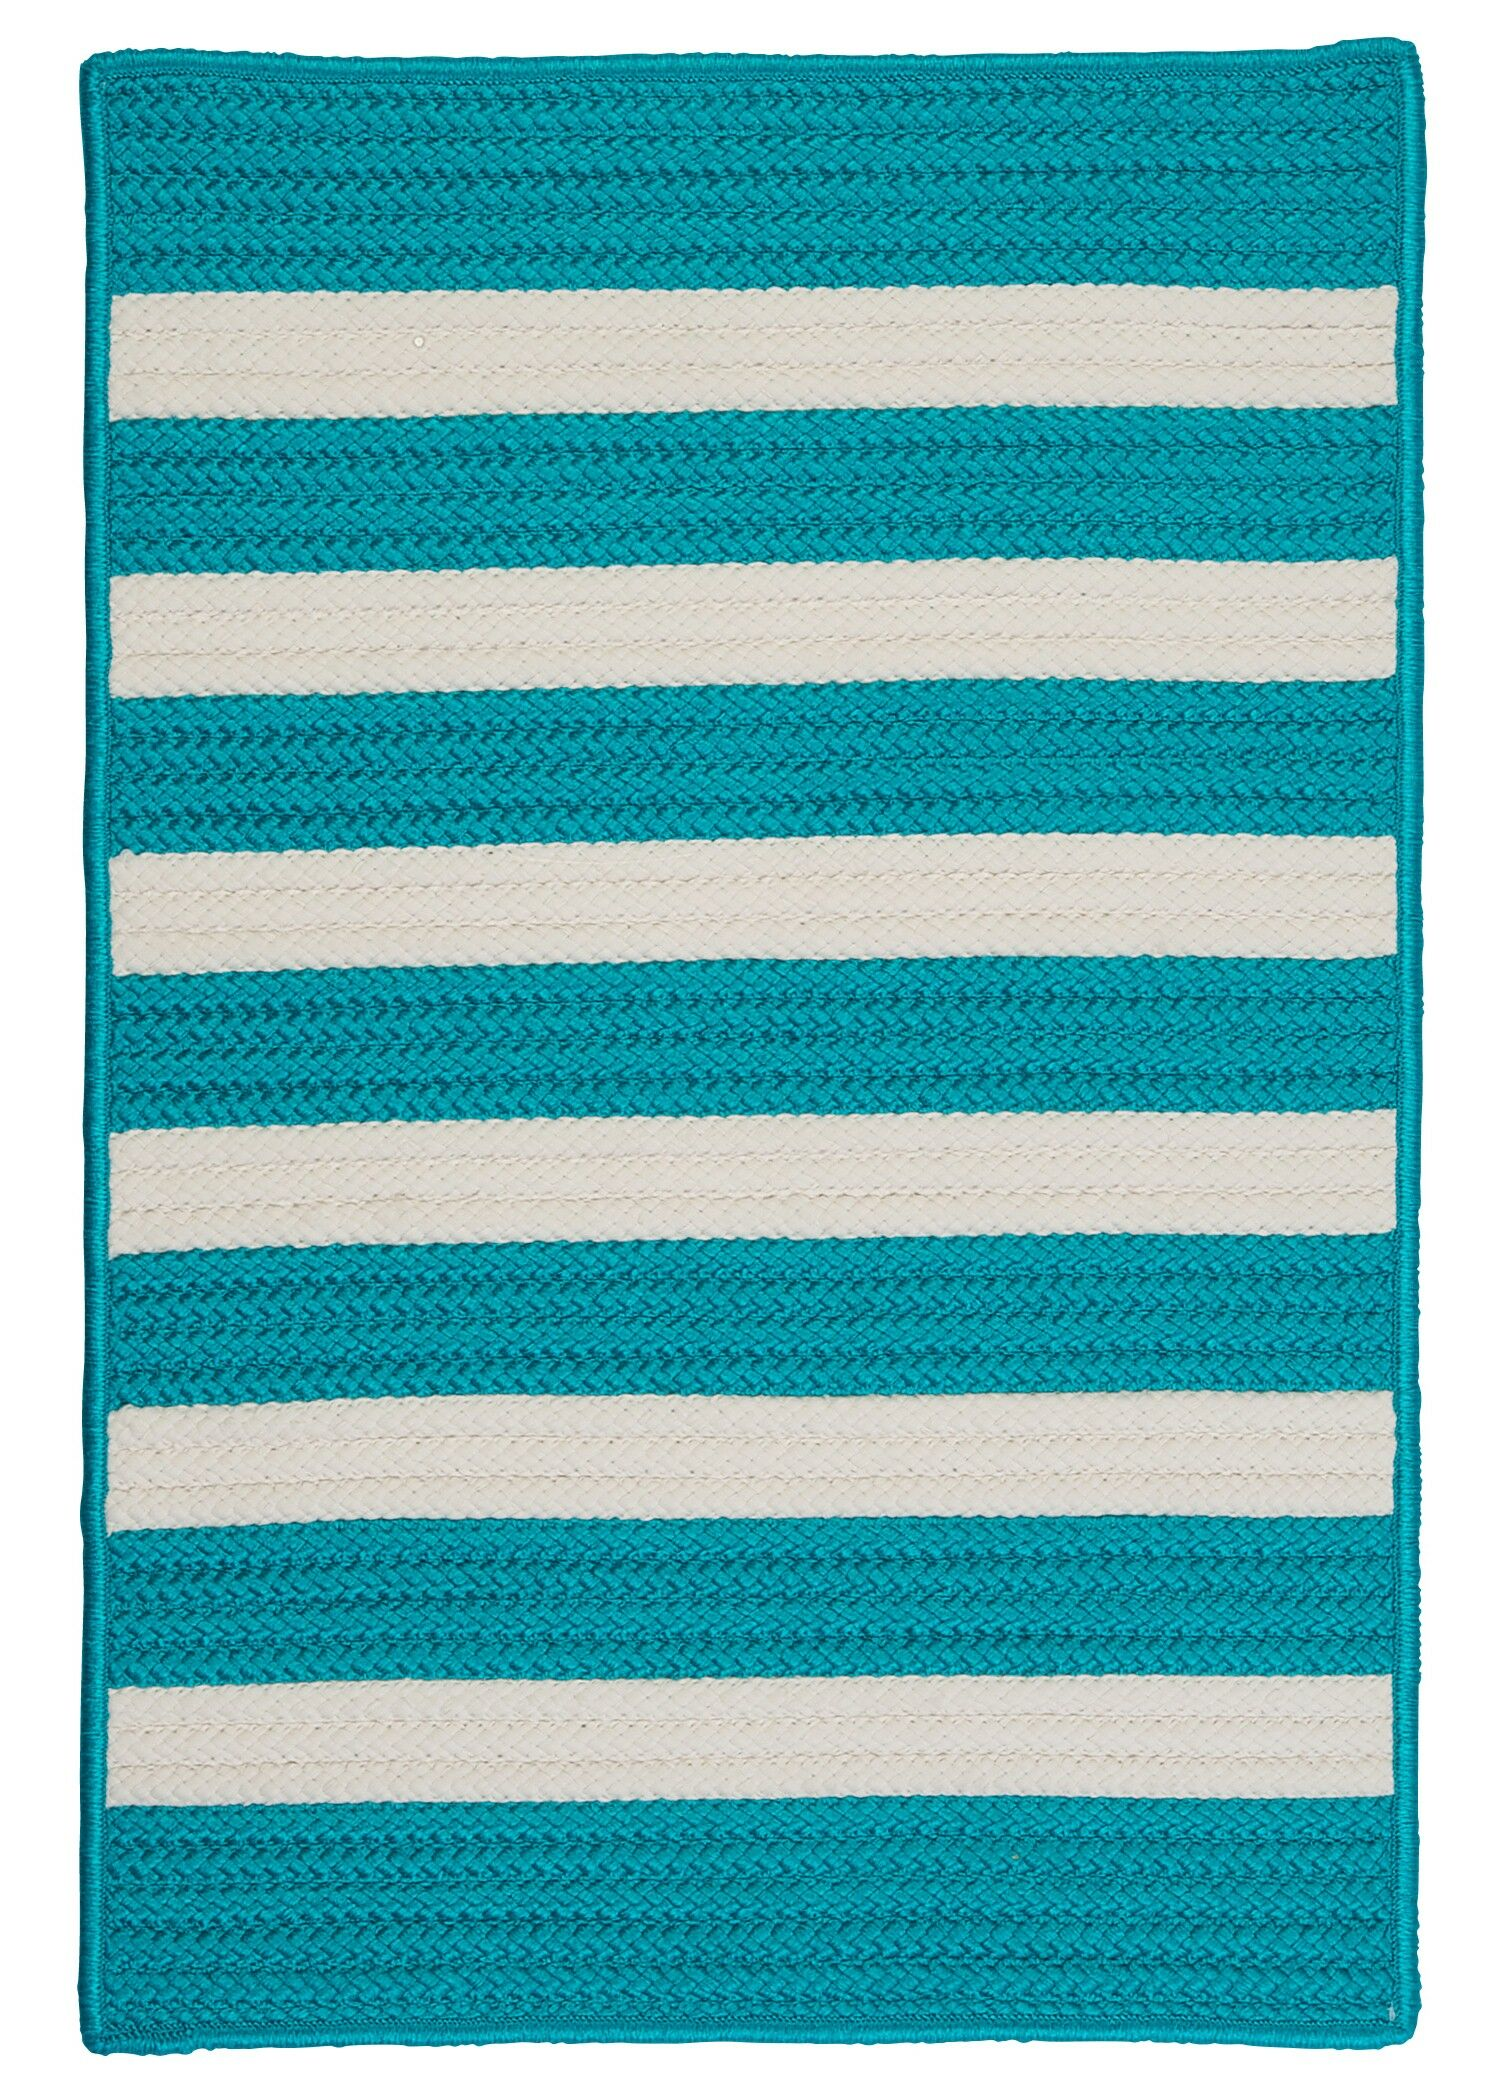 Georg Turquoise Indoor/Outdoor Area Rug Rug Size: Rectangle 8' x 11'